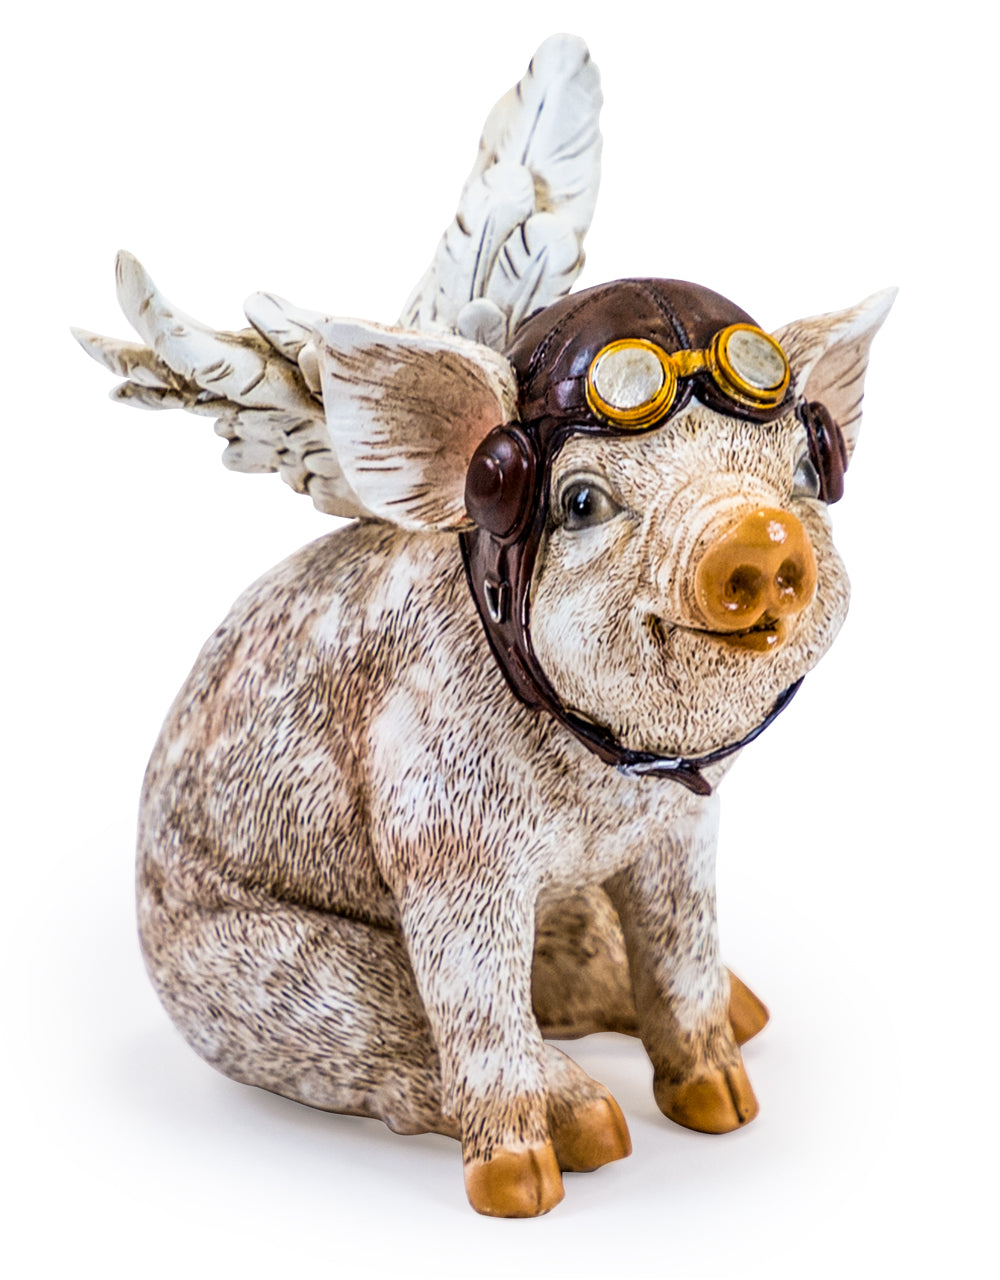 Sitting Piglet Pilot Figure - Wild Atlantic Living